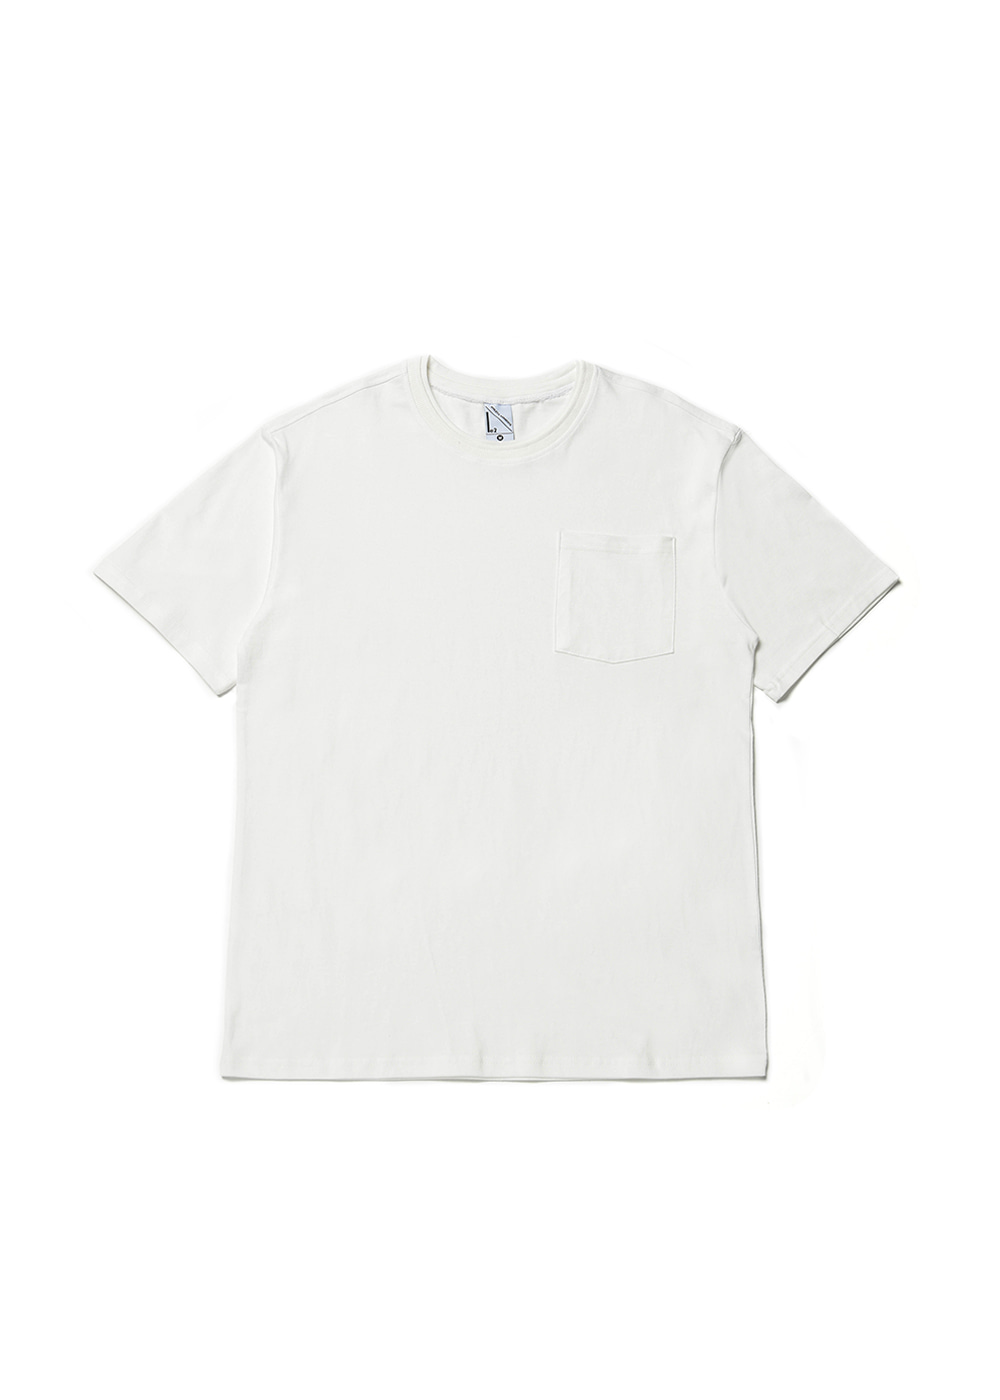 Double rib half T-shirt [off white]